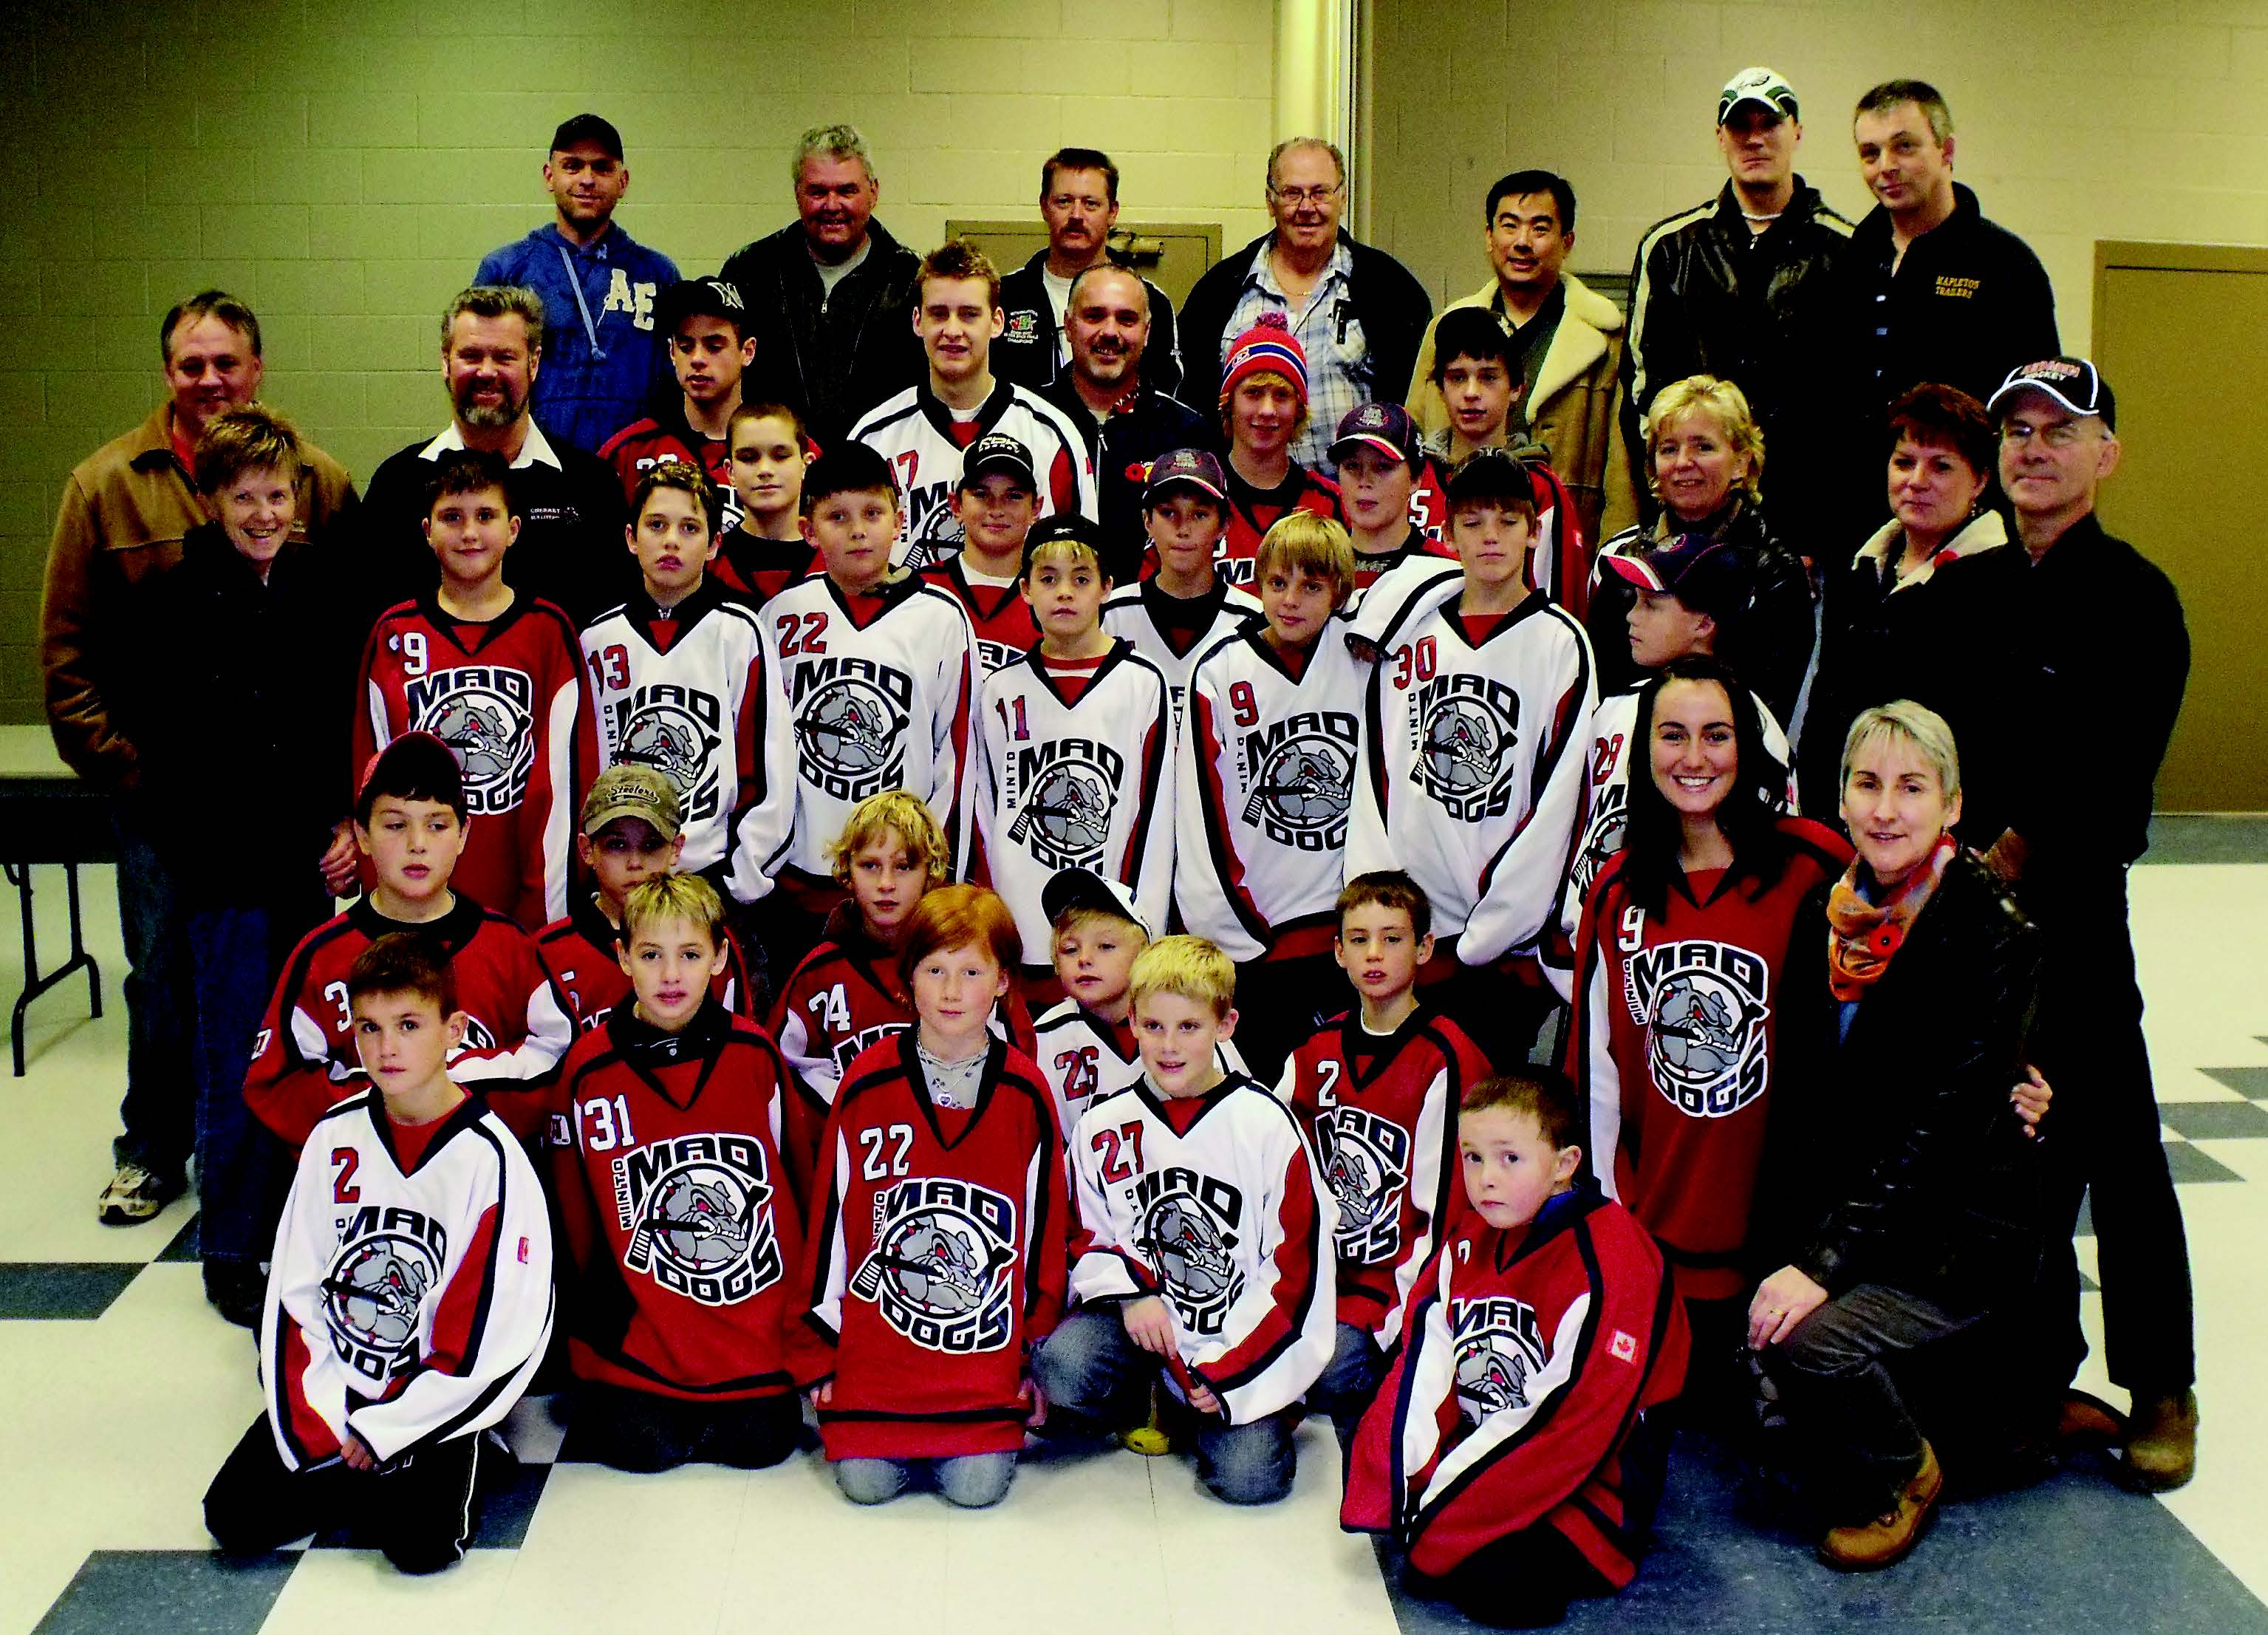 Sponsors and players wearing the new Minto Minor Hockey jerseys got together at a presentation of the new gear prior to the Palmerston 81's home game, Nov. 7. Sponsors covered the $22,000 cost of new jerseys for all MMH teams from Novice up. Patrick Raftis photo